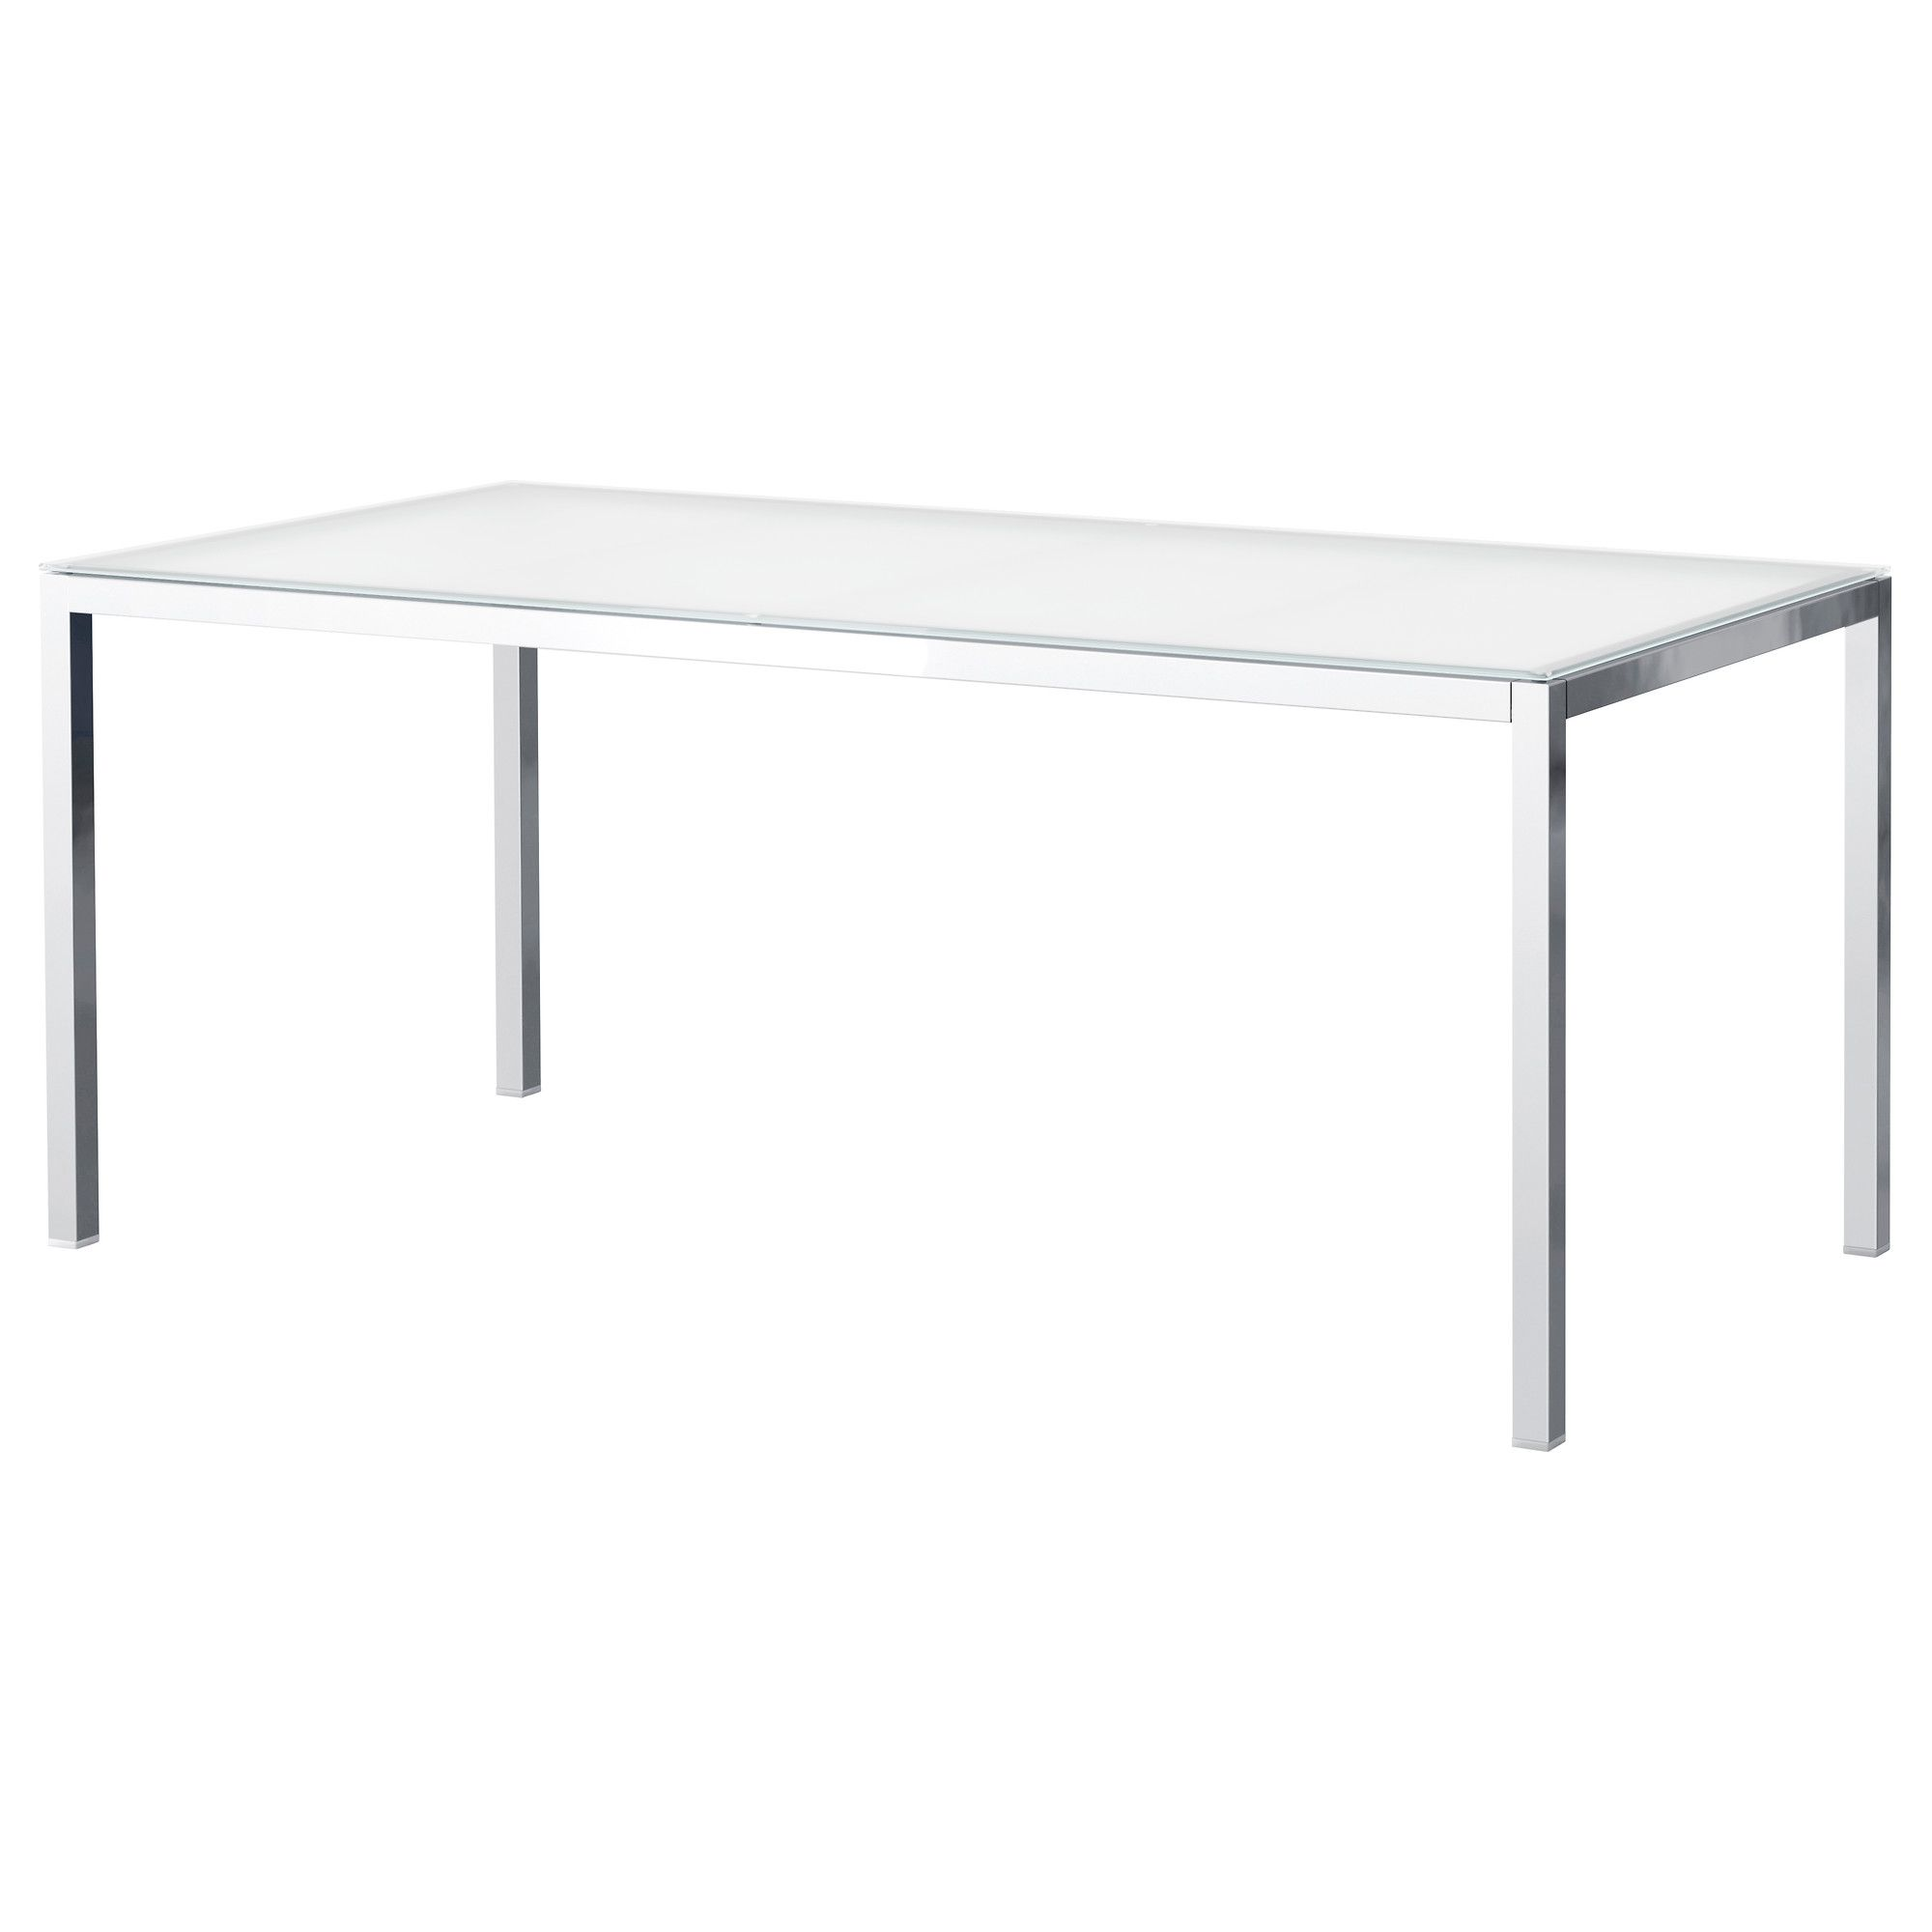 TORSBY Table chrome plated glass white IKEA